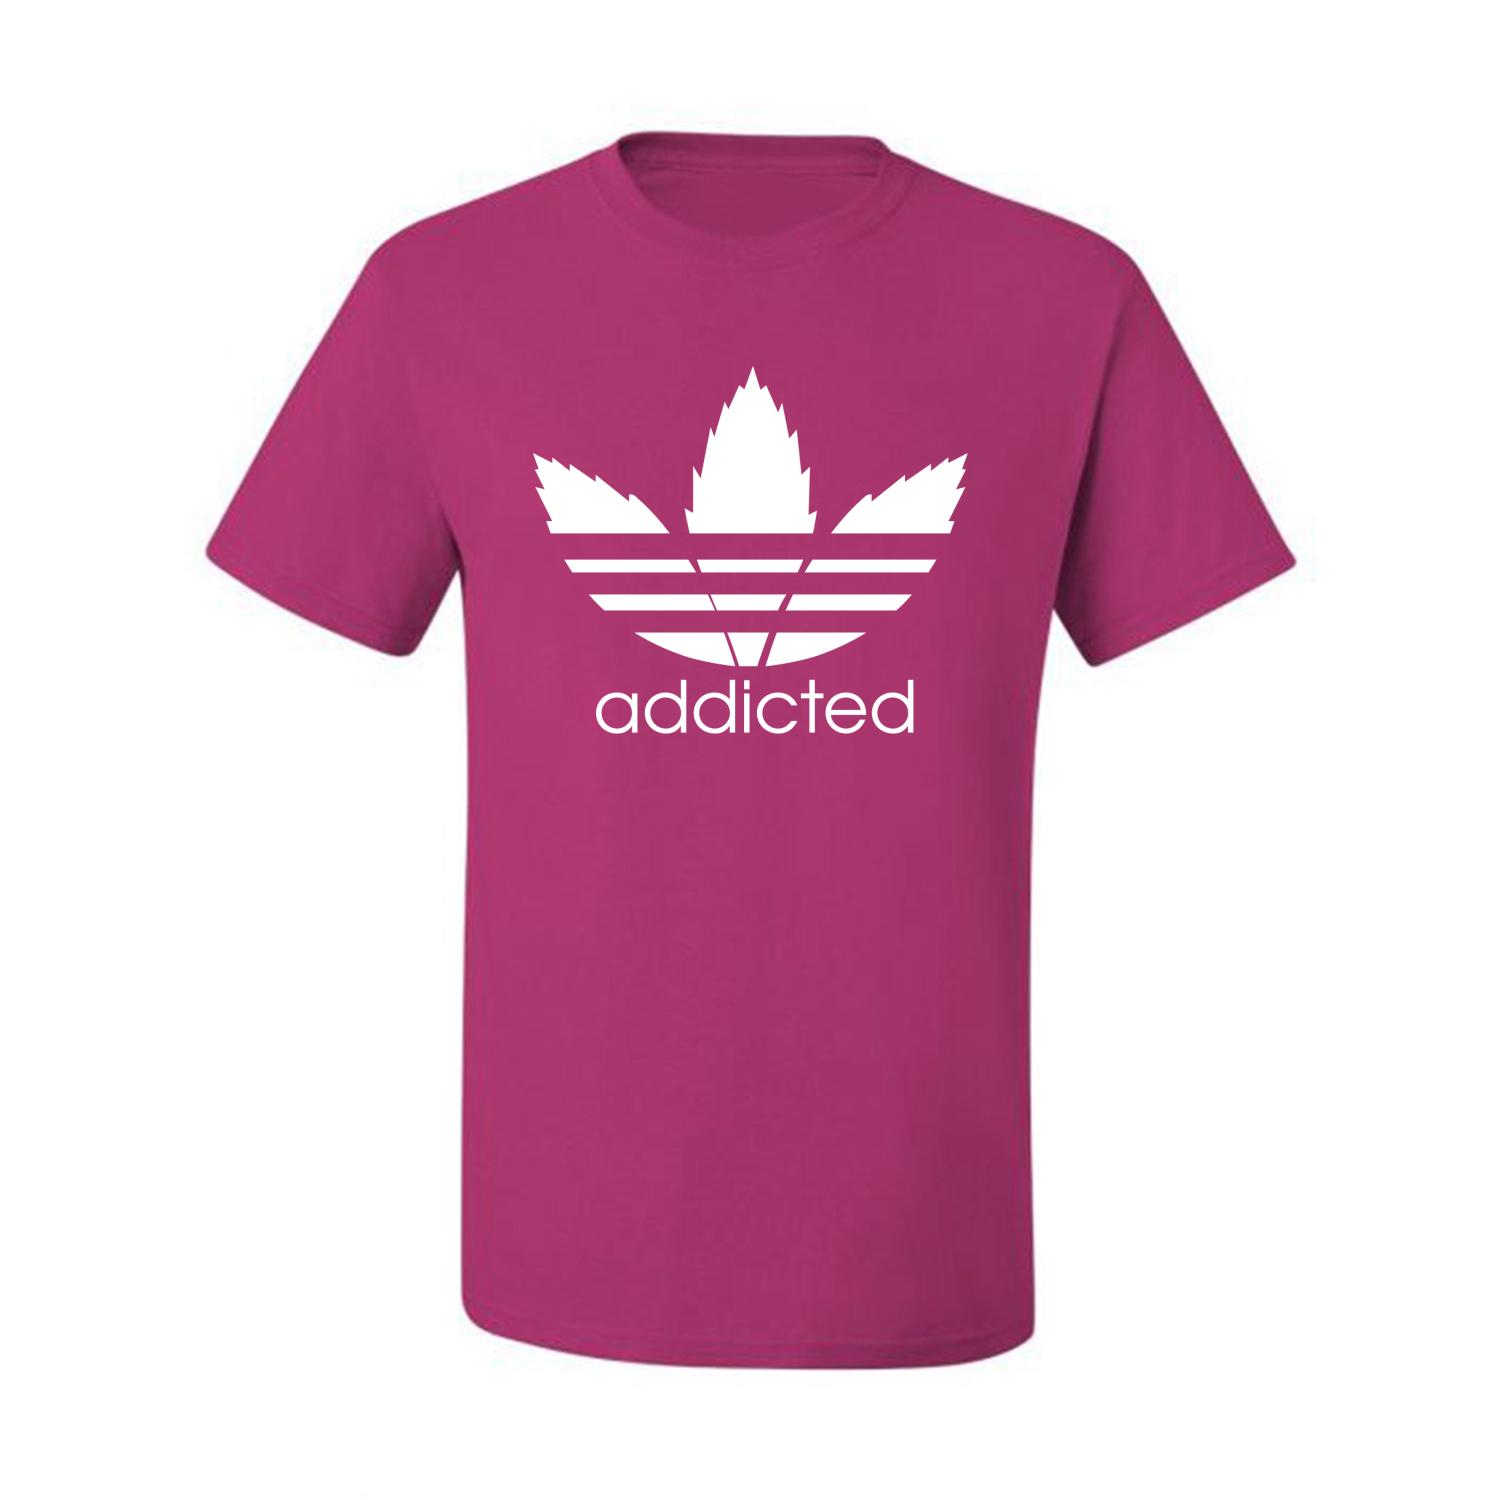 Addicted-White-Pot-Leaf-Mens-Weed-T-Shirt-Graphic-Parody-Tee thumbnail 8